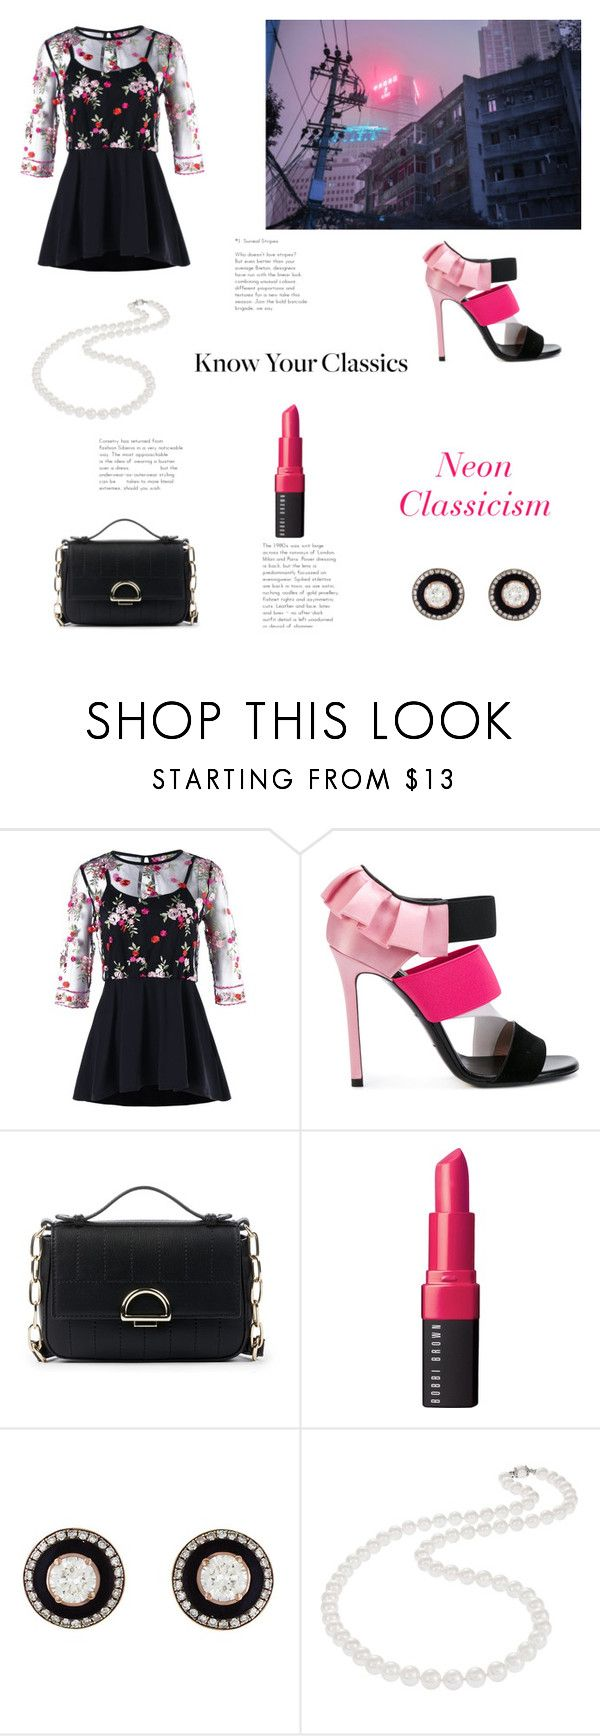 """""""Neon Classicism"""" by yosifova ❤ liked on Polyvore featuring Emilio Pucci, Sole Society, Bobbi Brown Cosmetics, Selim Mouzannar, Nadri, casual, outfit, neon and Elegant"""